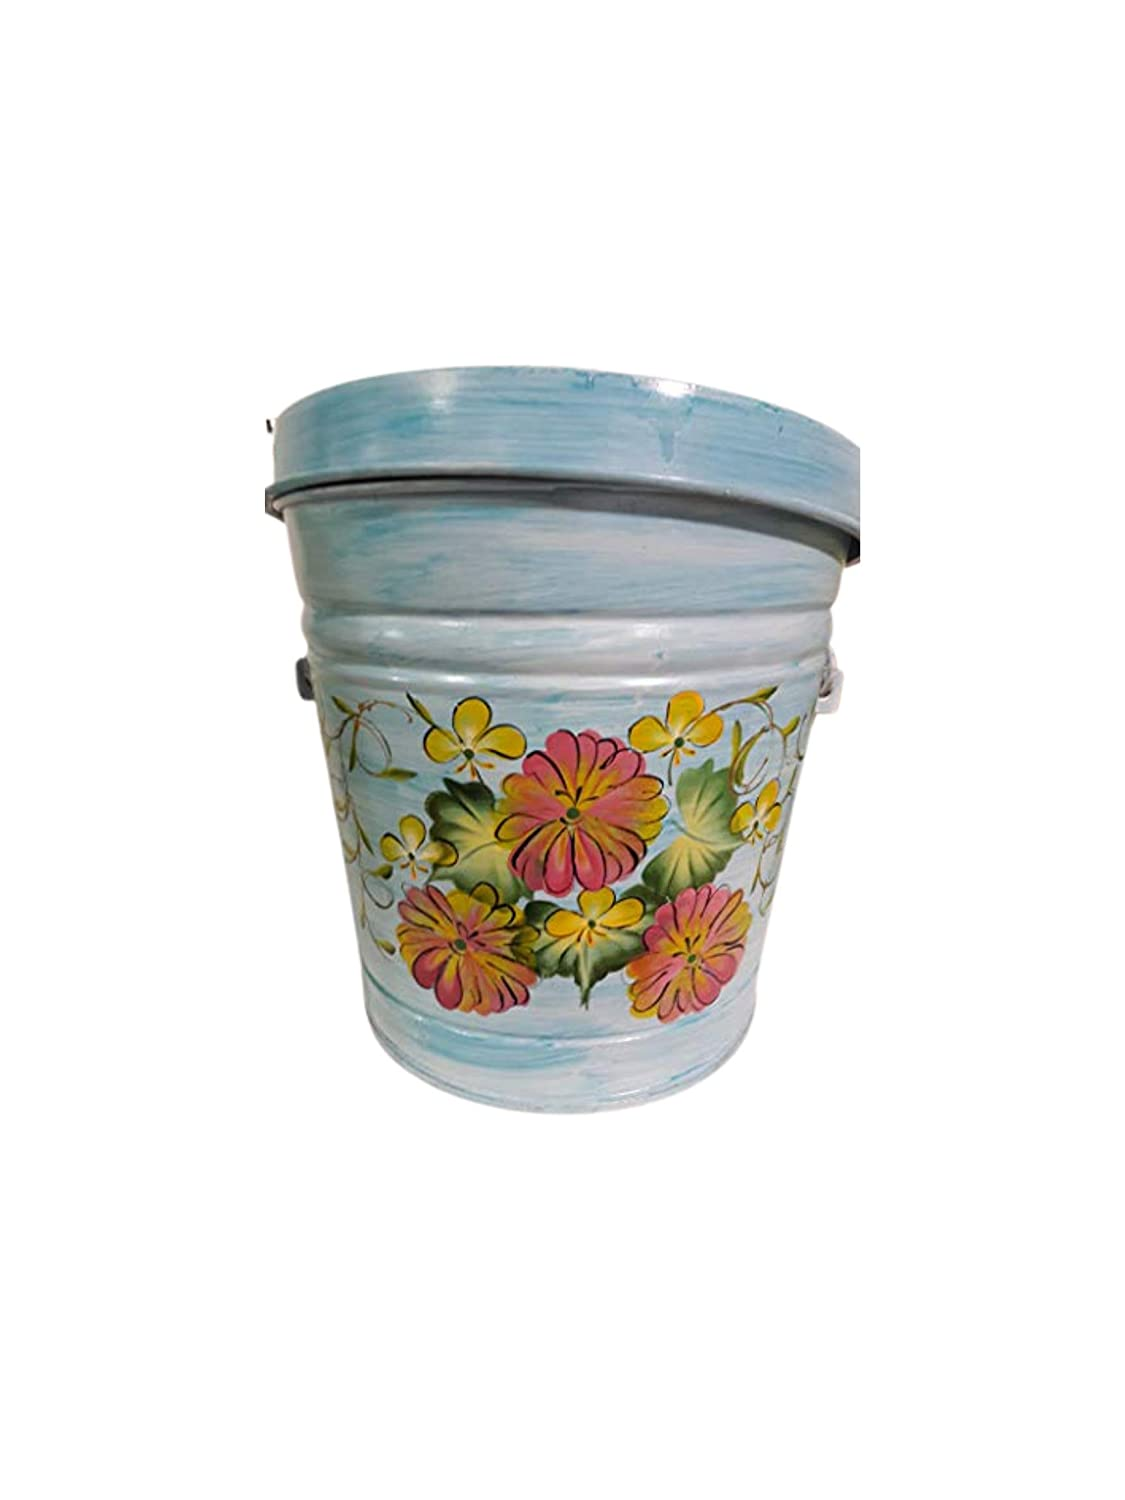 Miami Mall 6 Gallon Hand Painted Trash Sales for sale Can Decorative Garbage